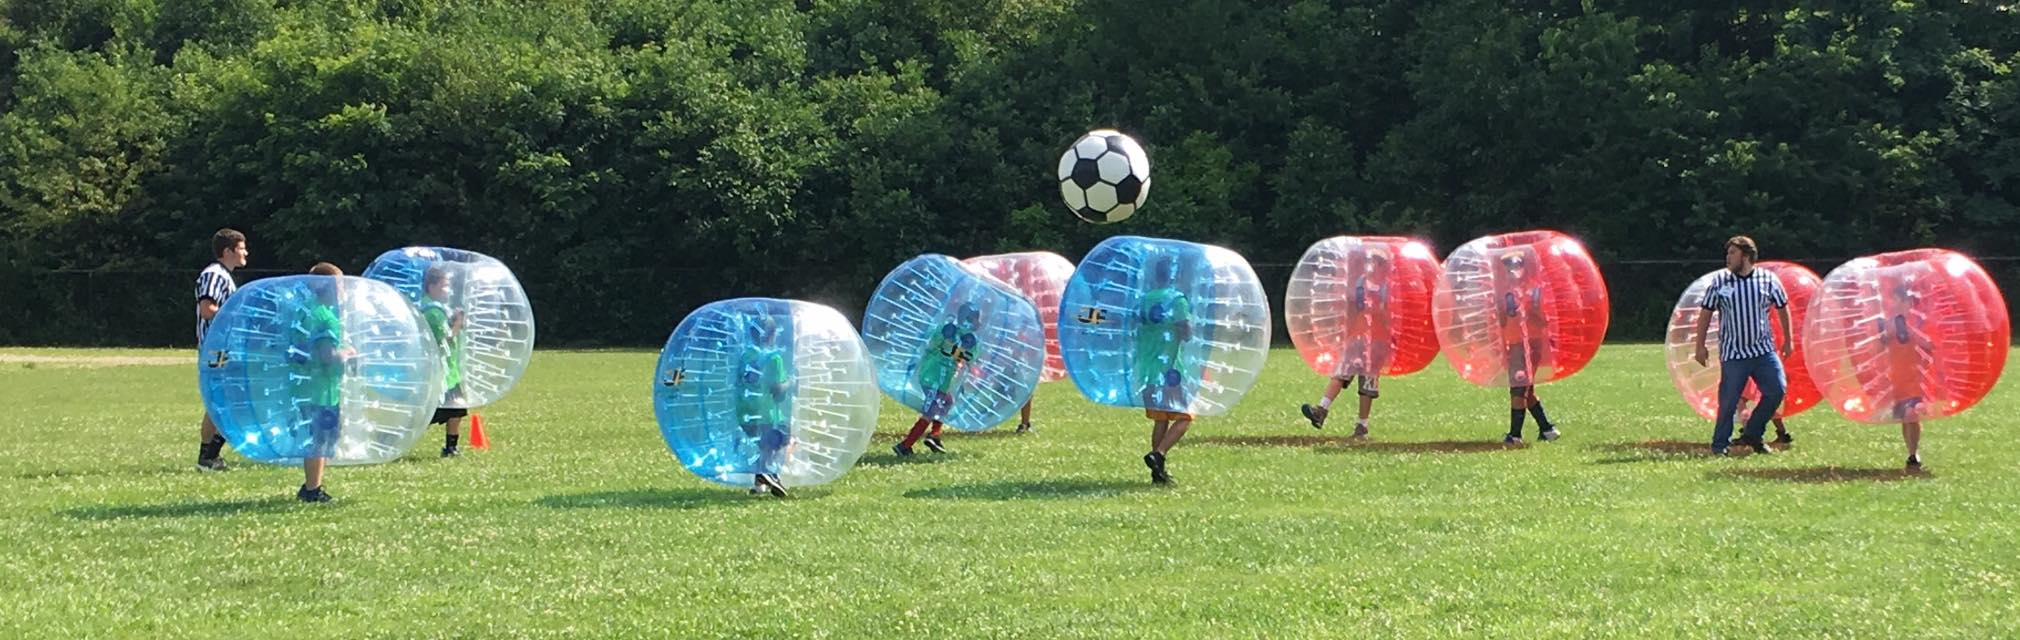 Bubble Soccer pan (2).jpg